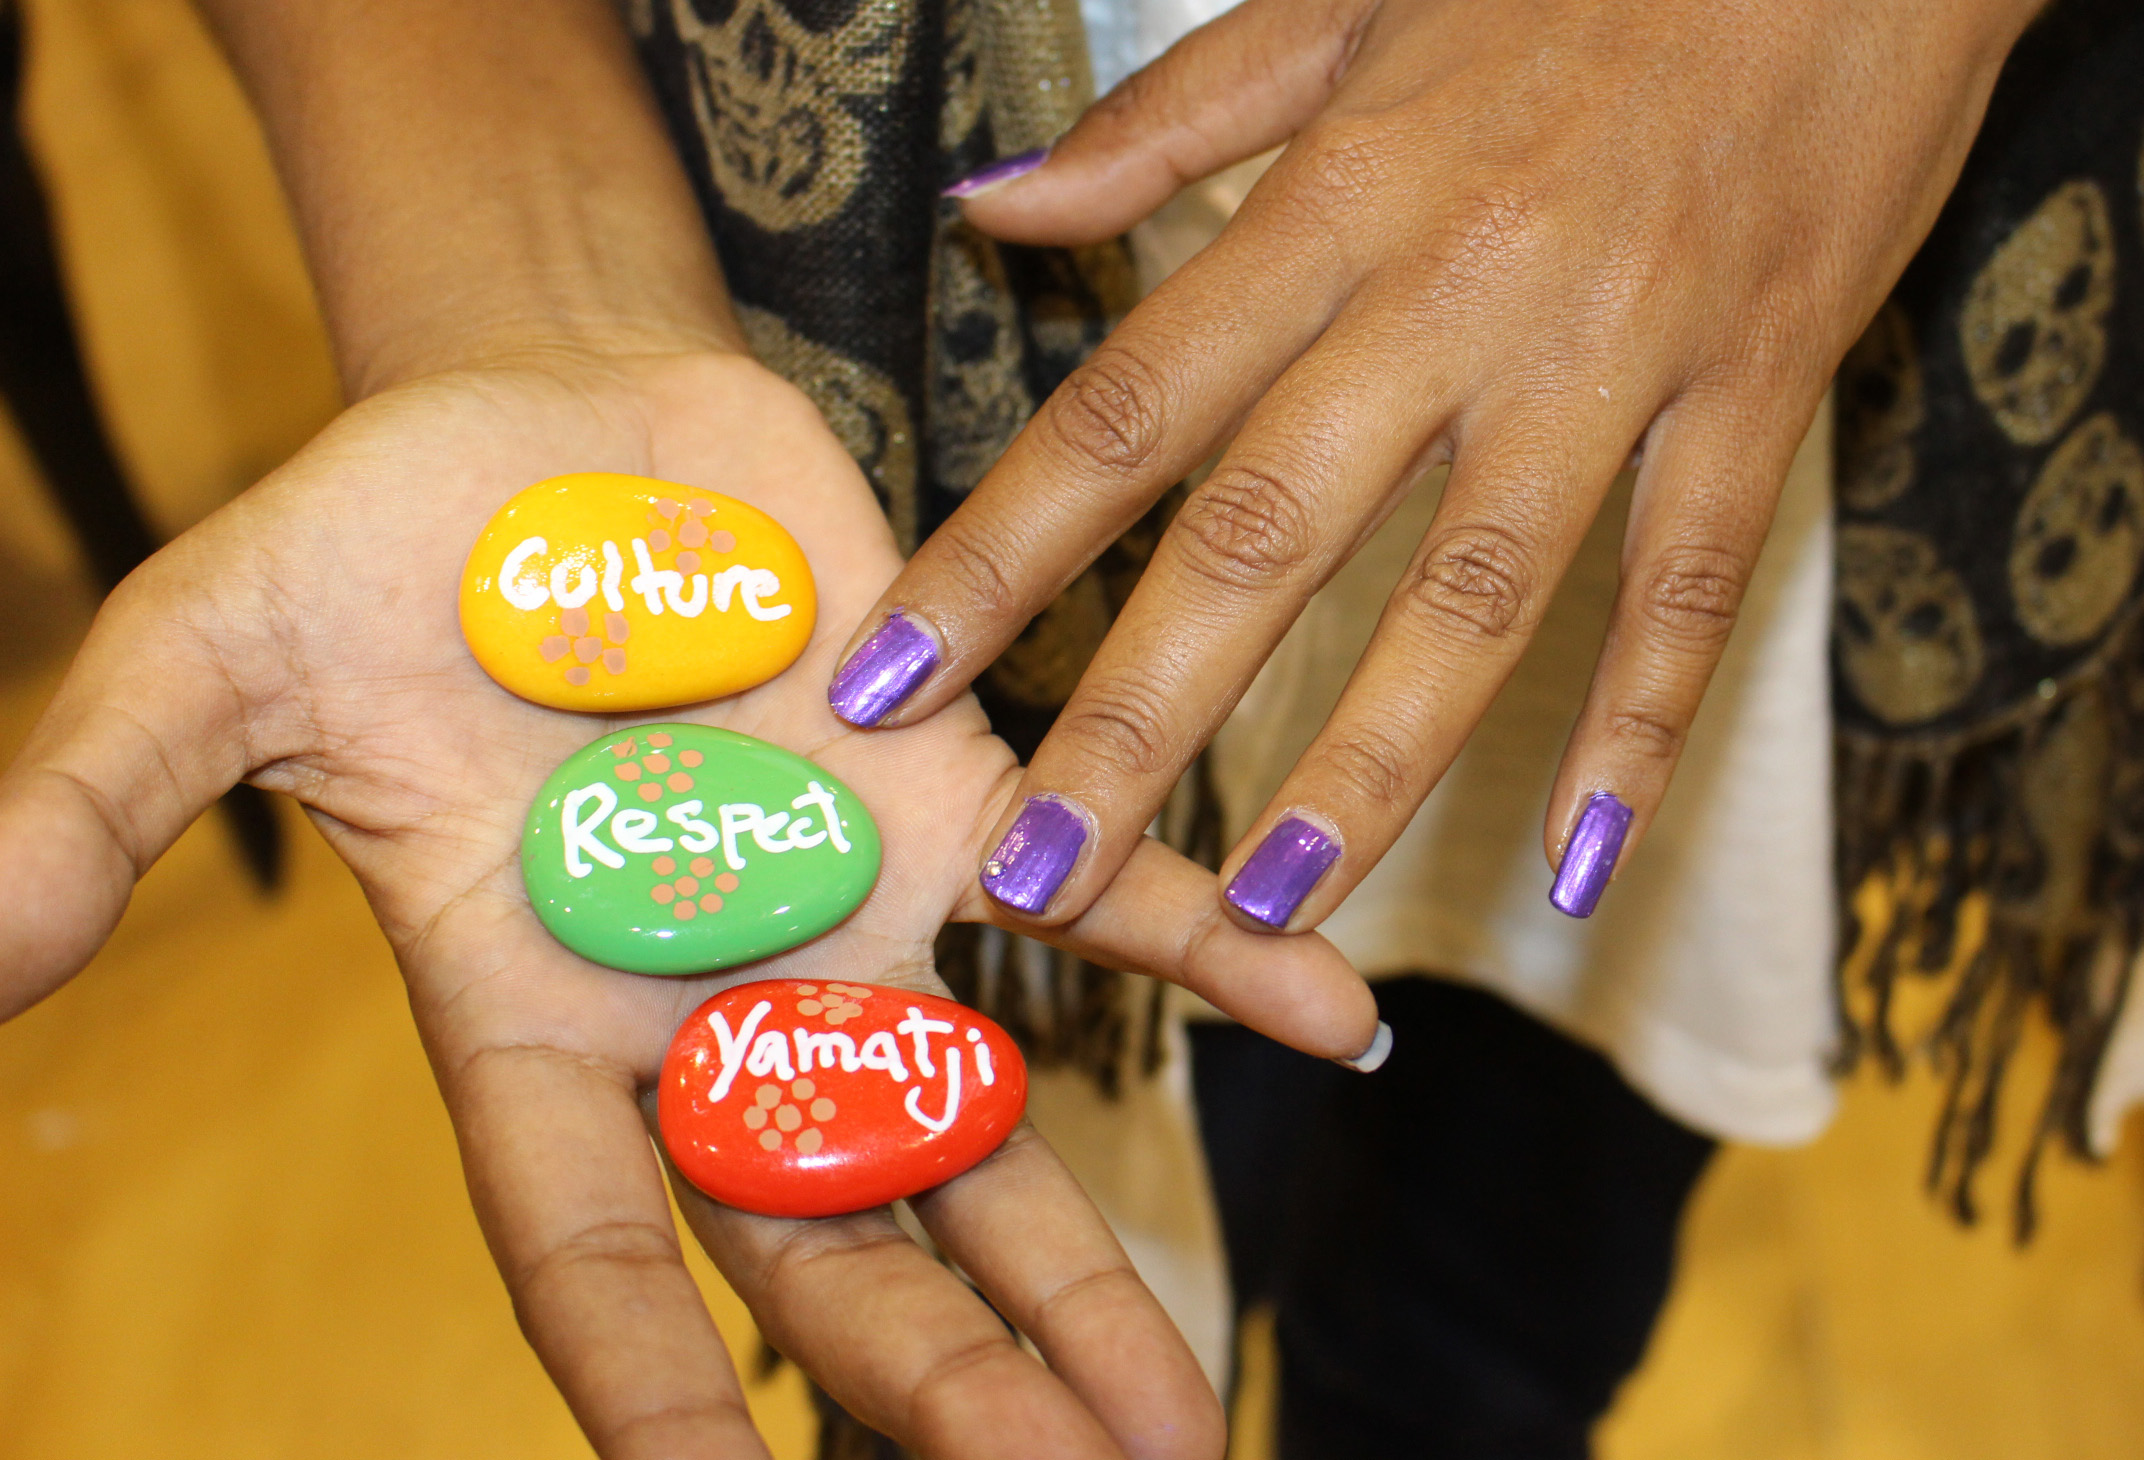 Positive affirmation rock painting was a popular activity in Geraldton.